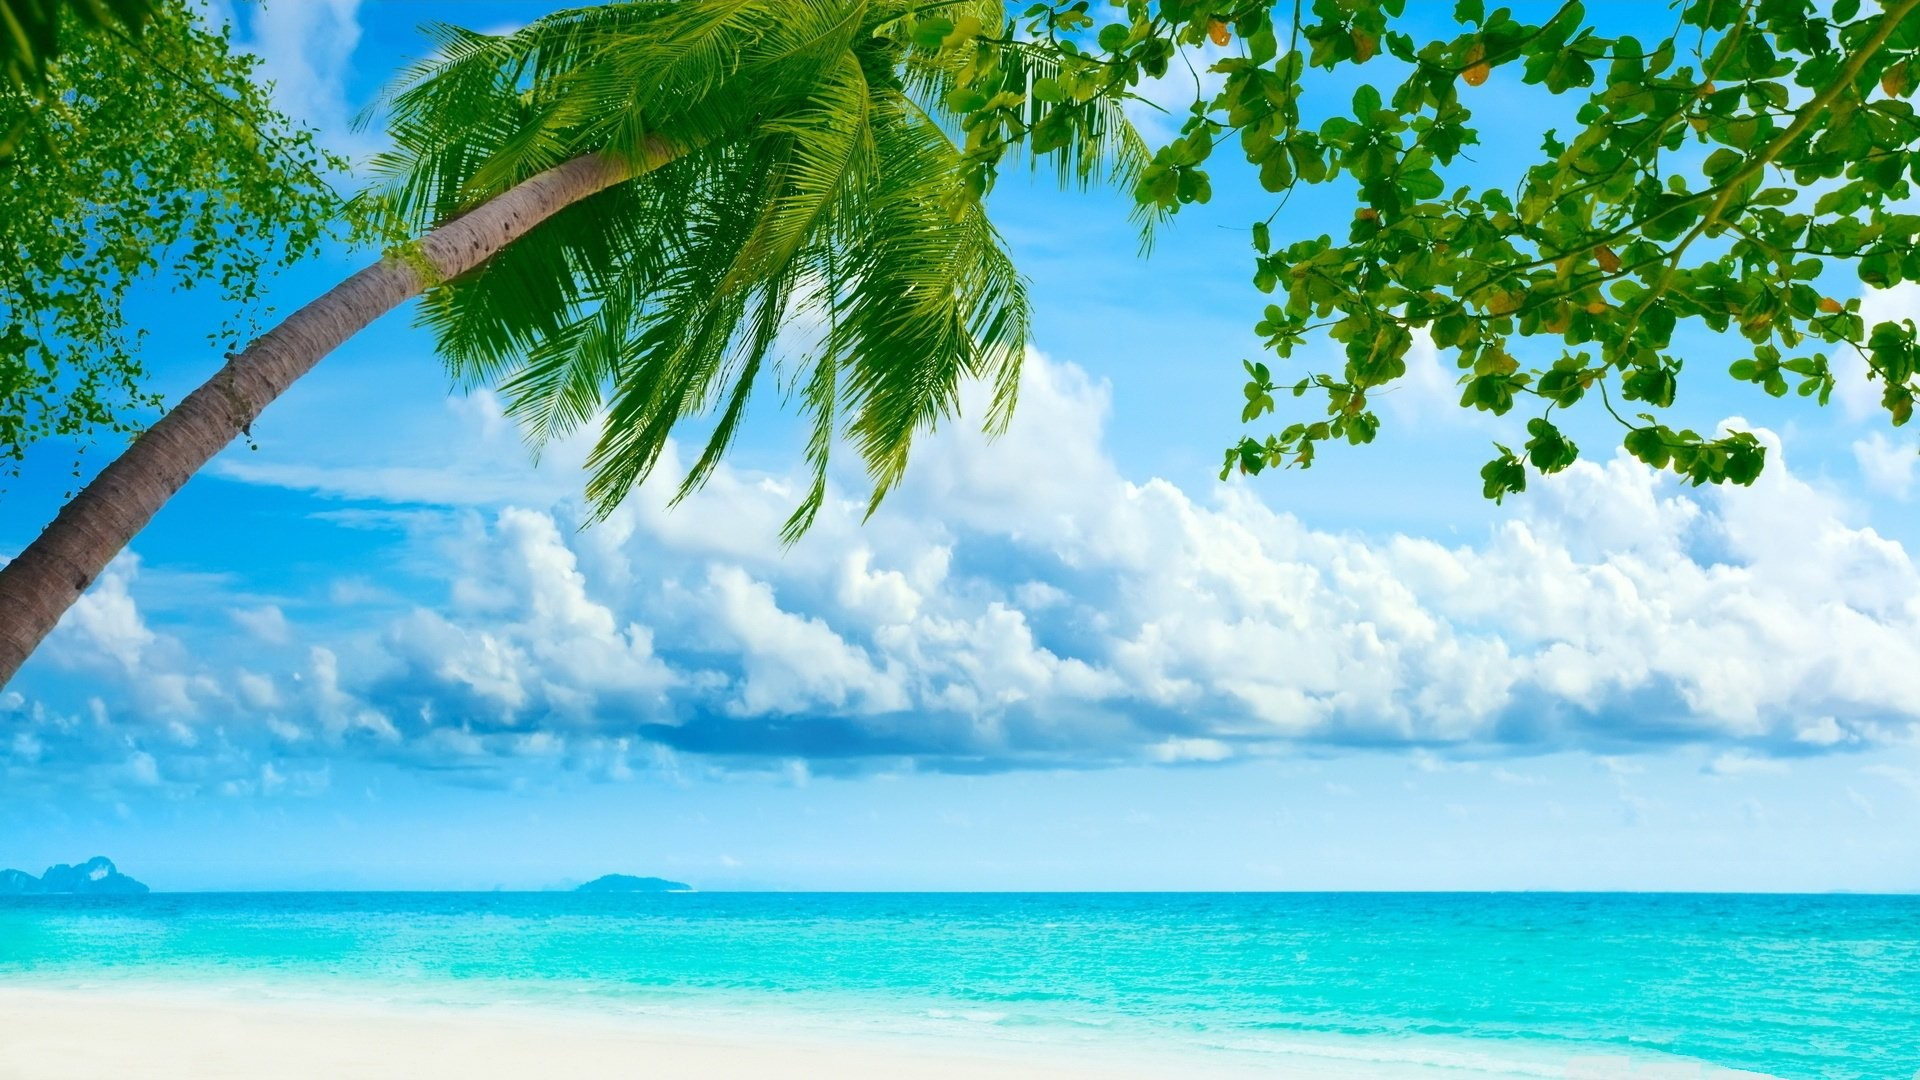 Res: 1920x1080, Tropical Island Wallpaper wallpapers HD Desktop Wallpapers